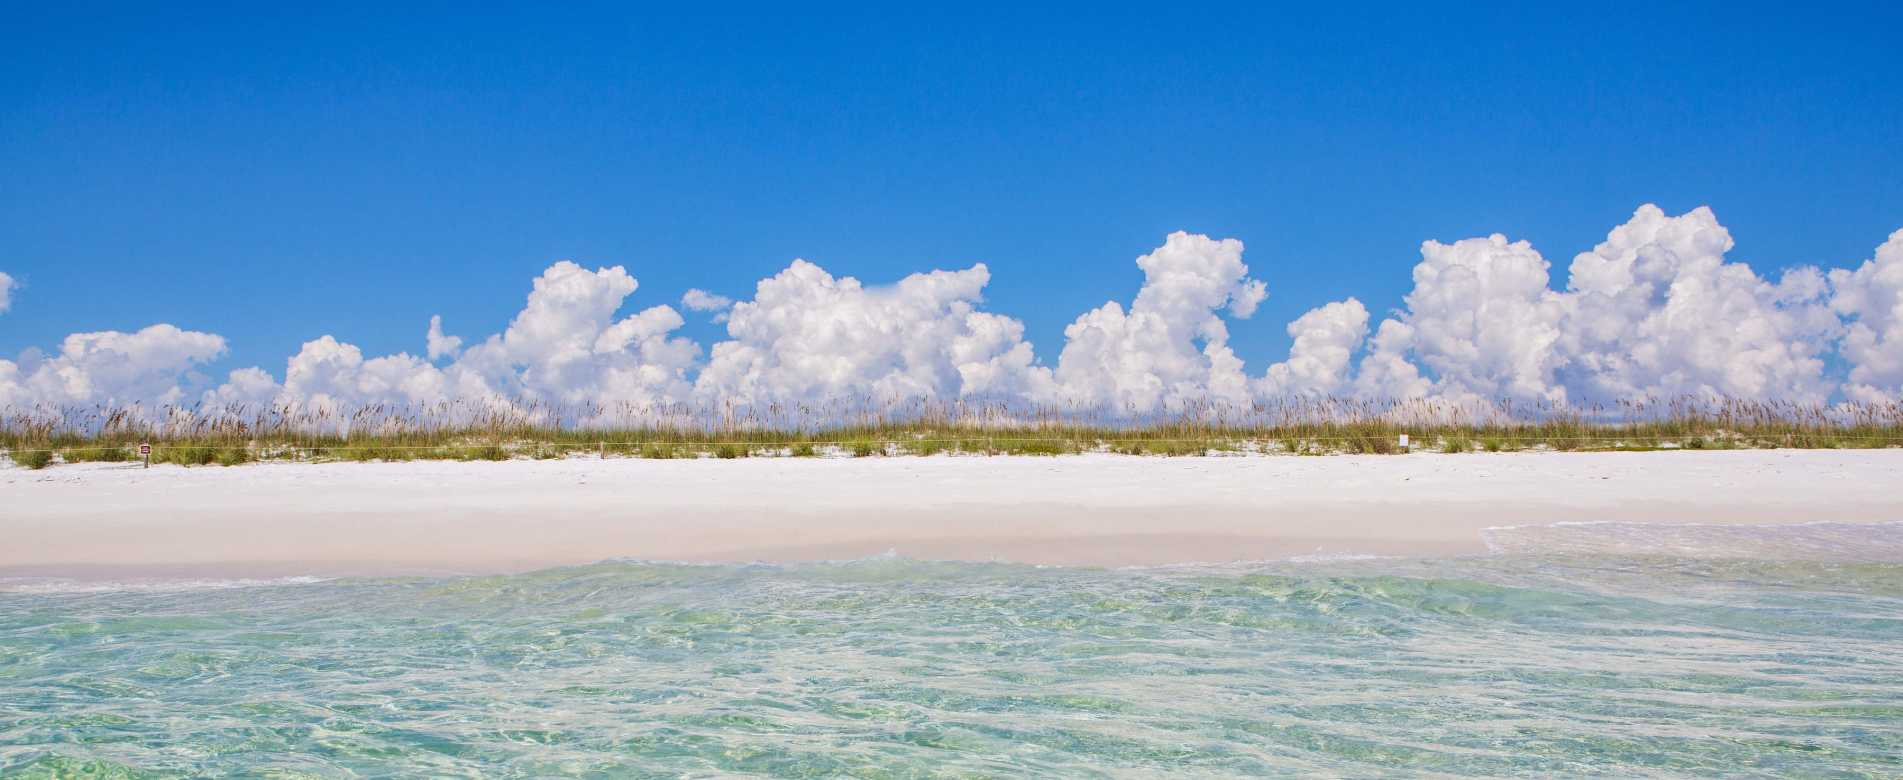 Beaches In Destin And Fort Walton Beach